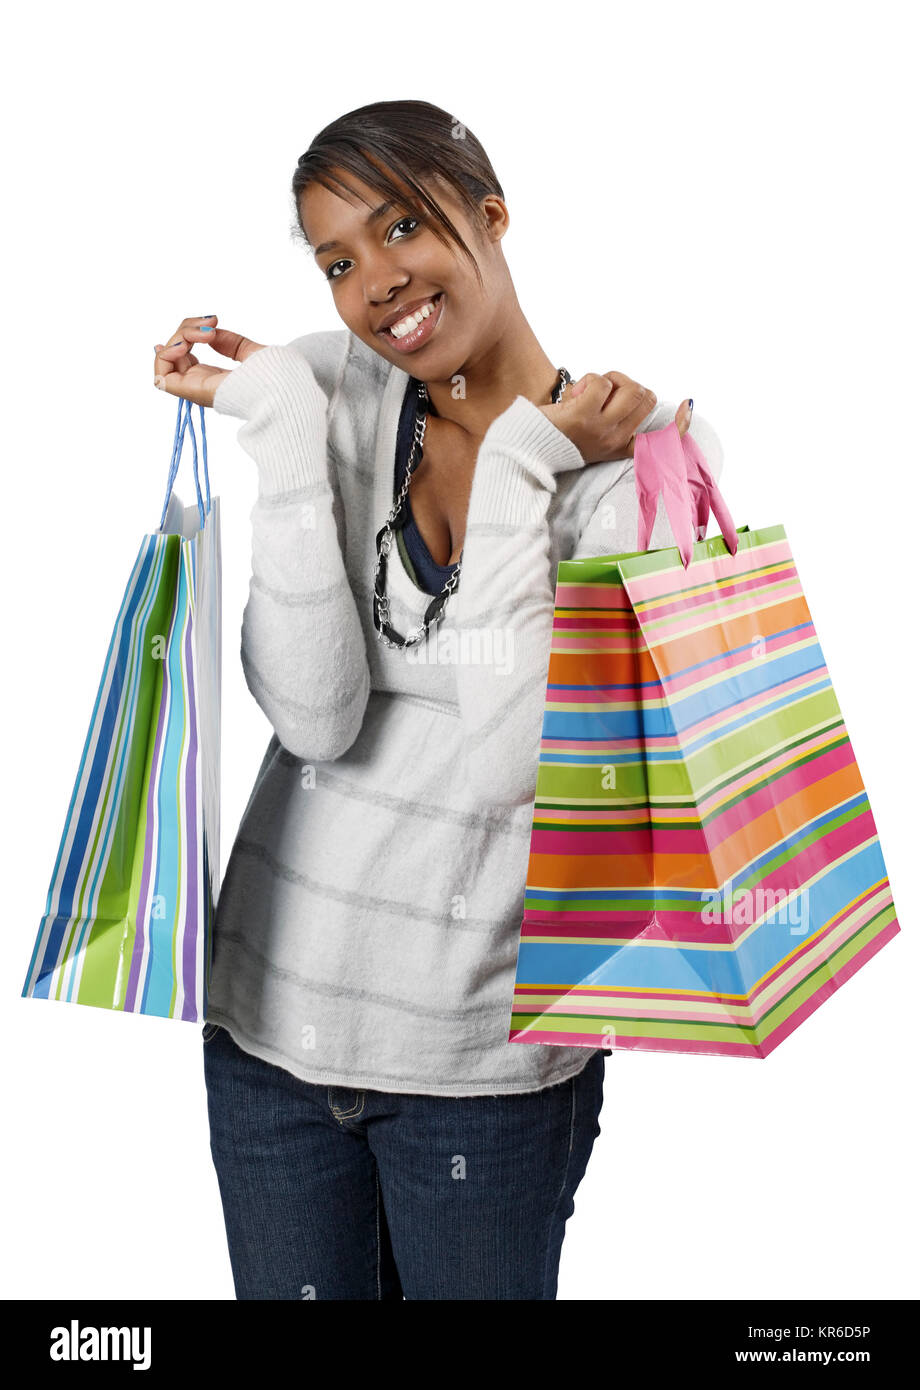 A very happy shopaholic girl holding bags and smiling wildly about her rabid consumerism. Stock Photo